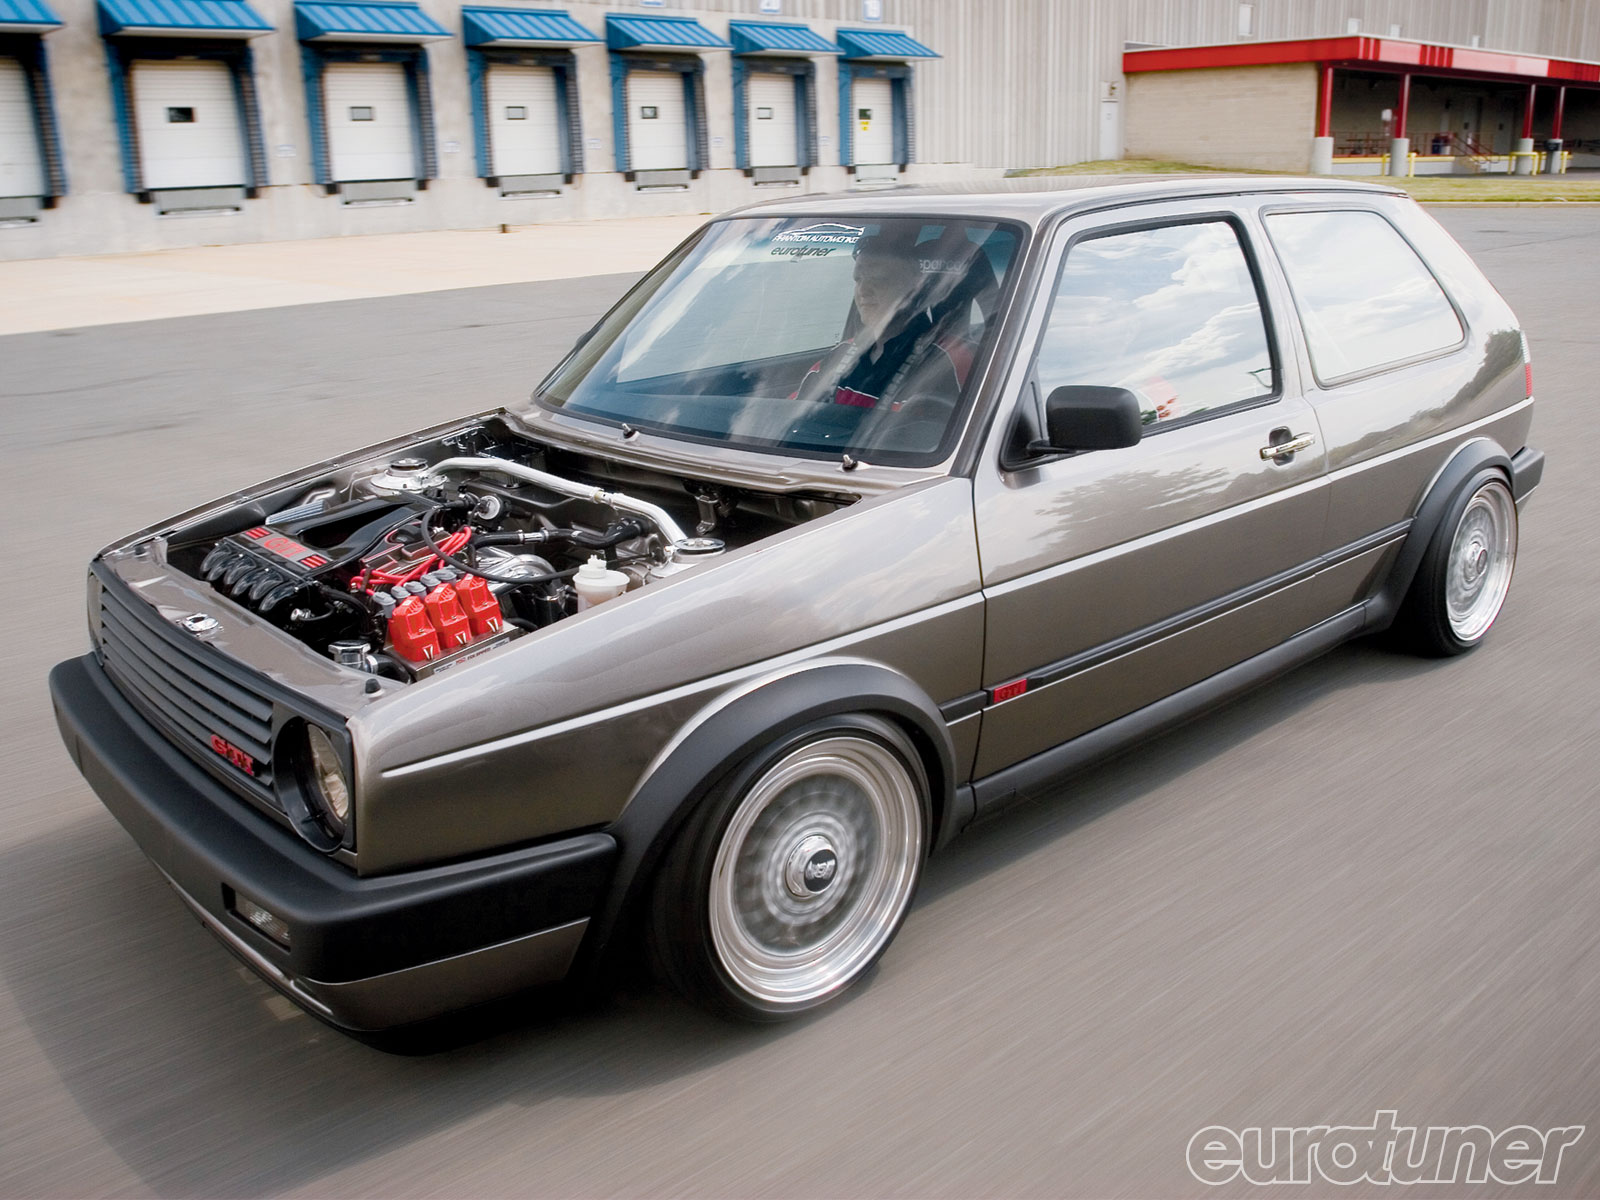 hight resolution of  wiring diagram for 2001 gti glx wiring liry on vw engine diagram vw fuel vw pat